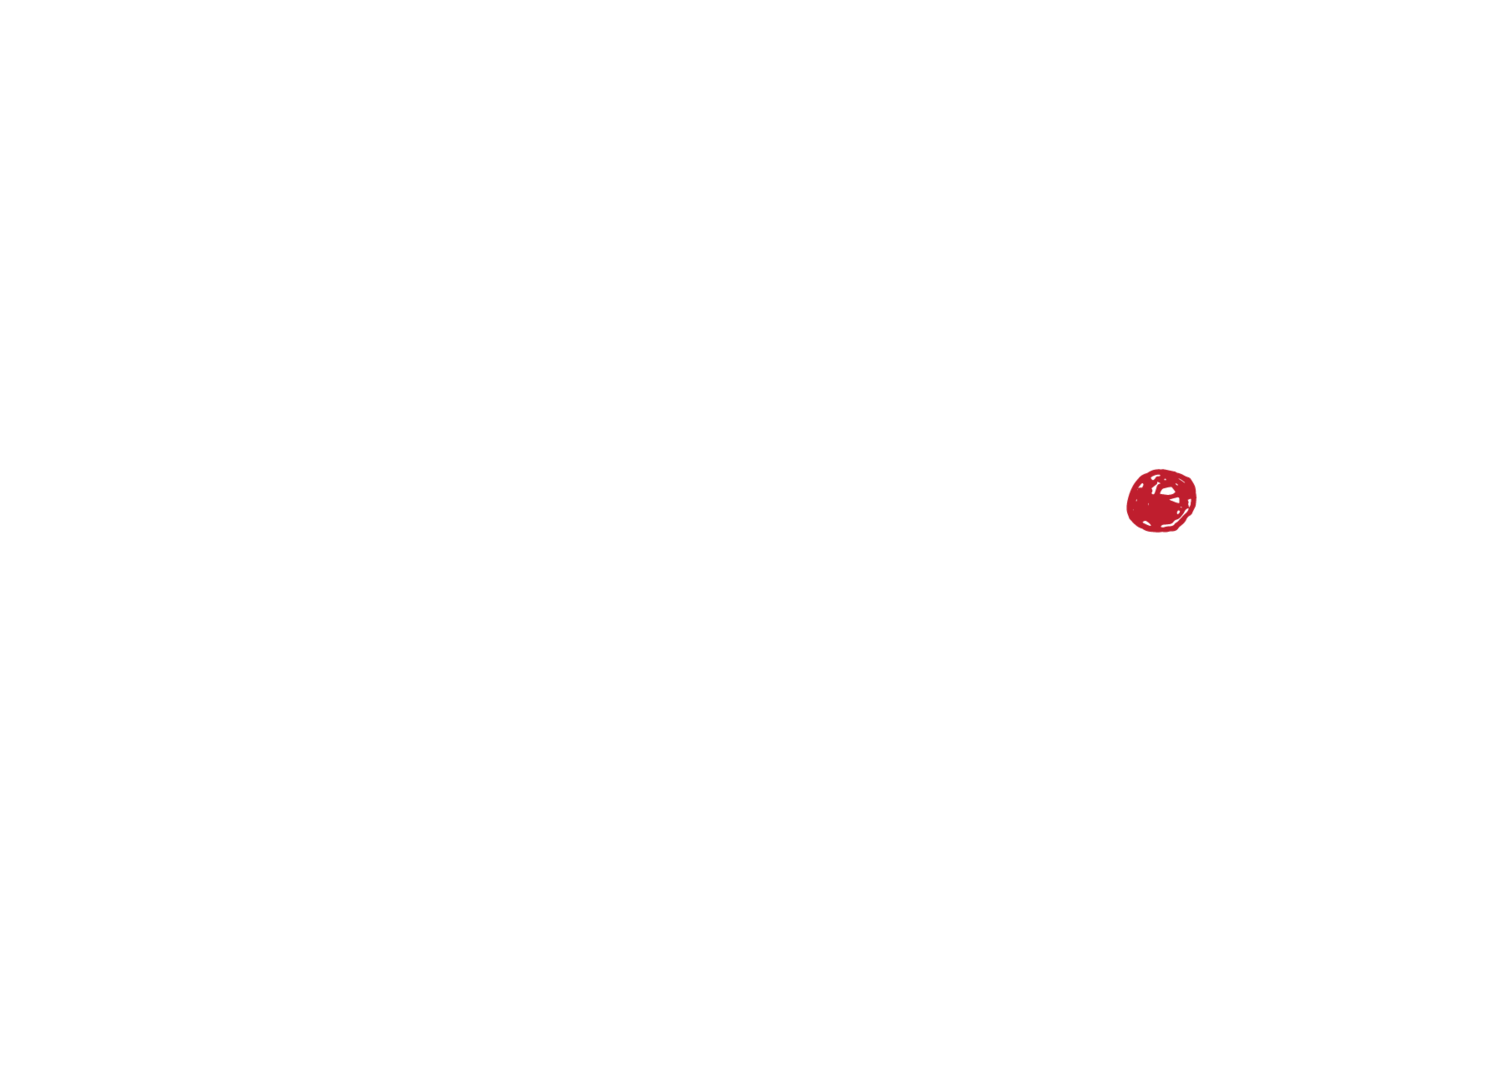 Schoolkids Records - The Label